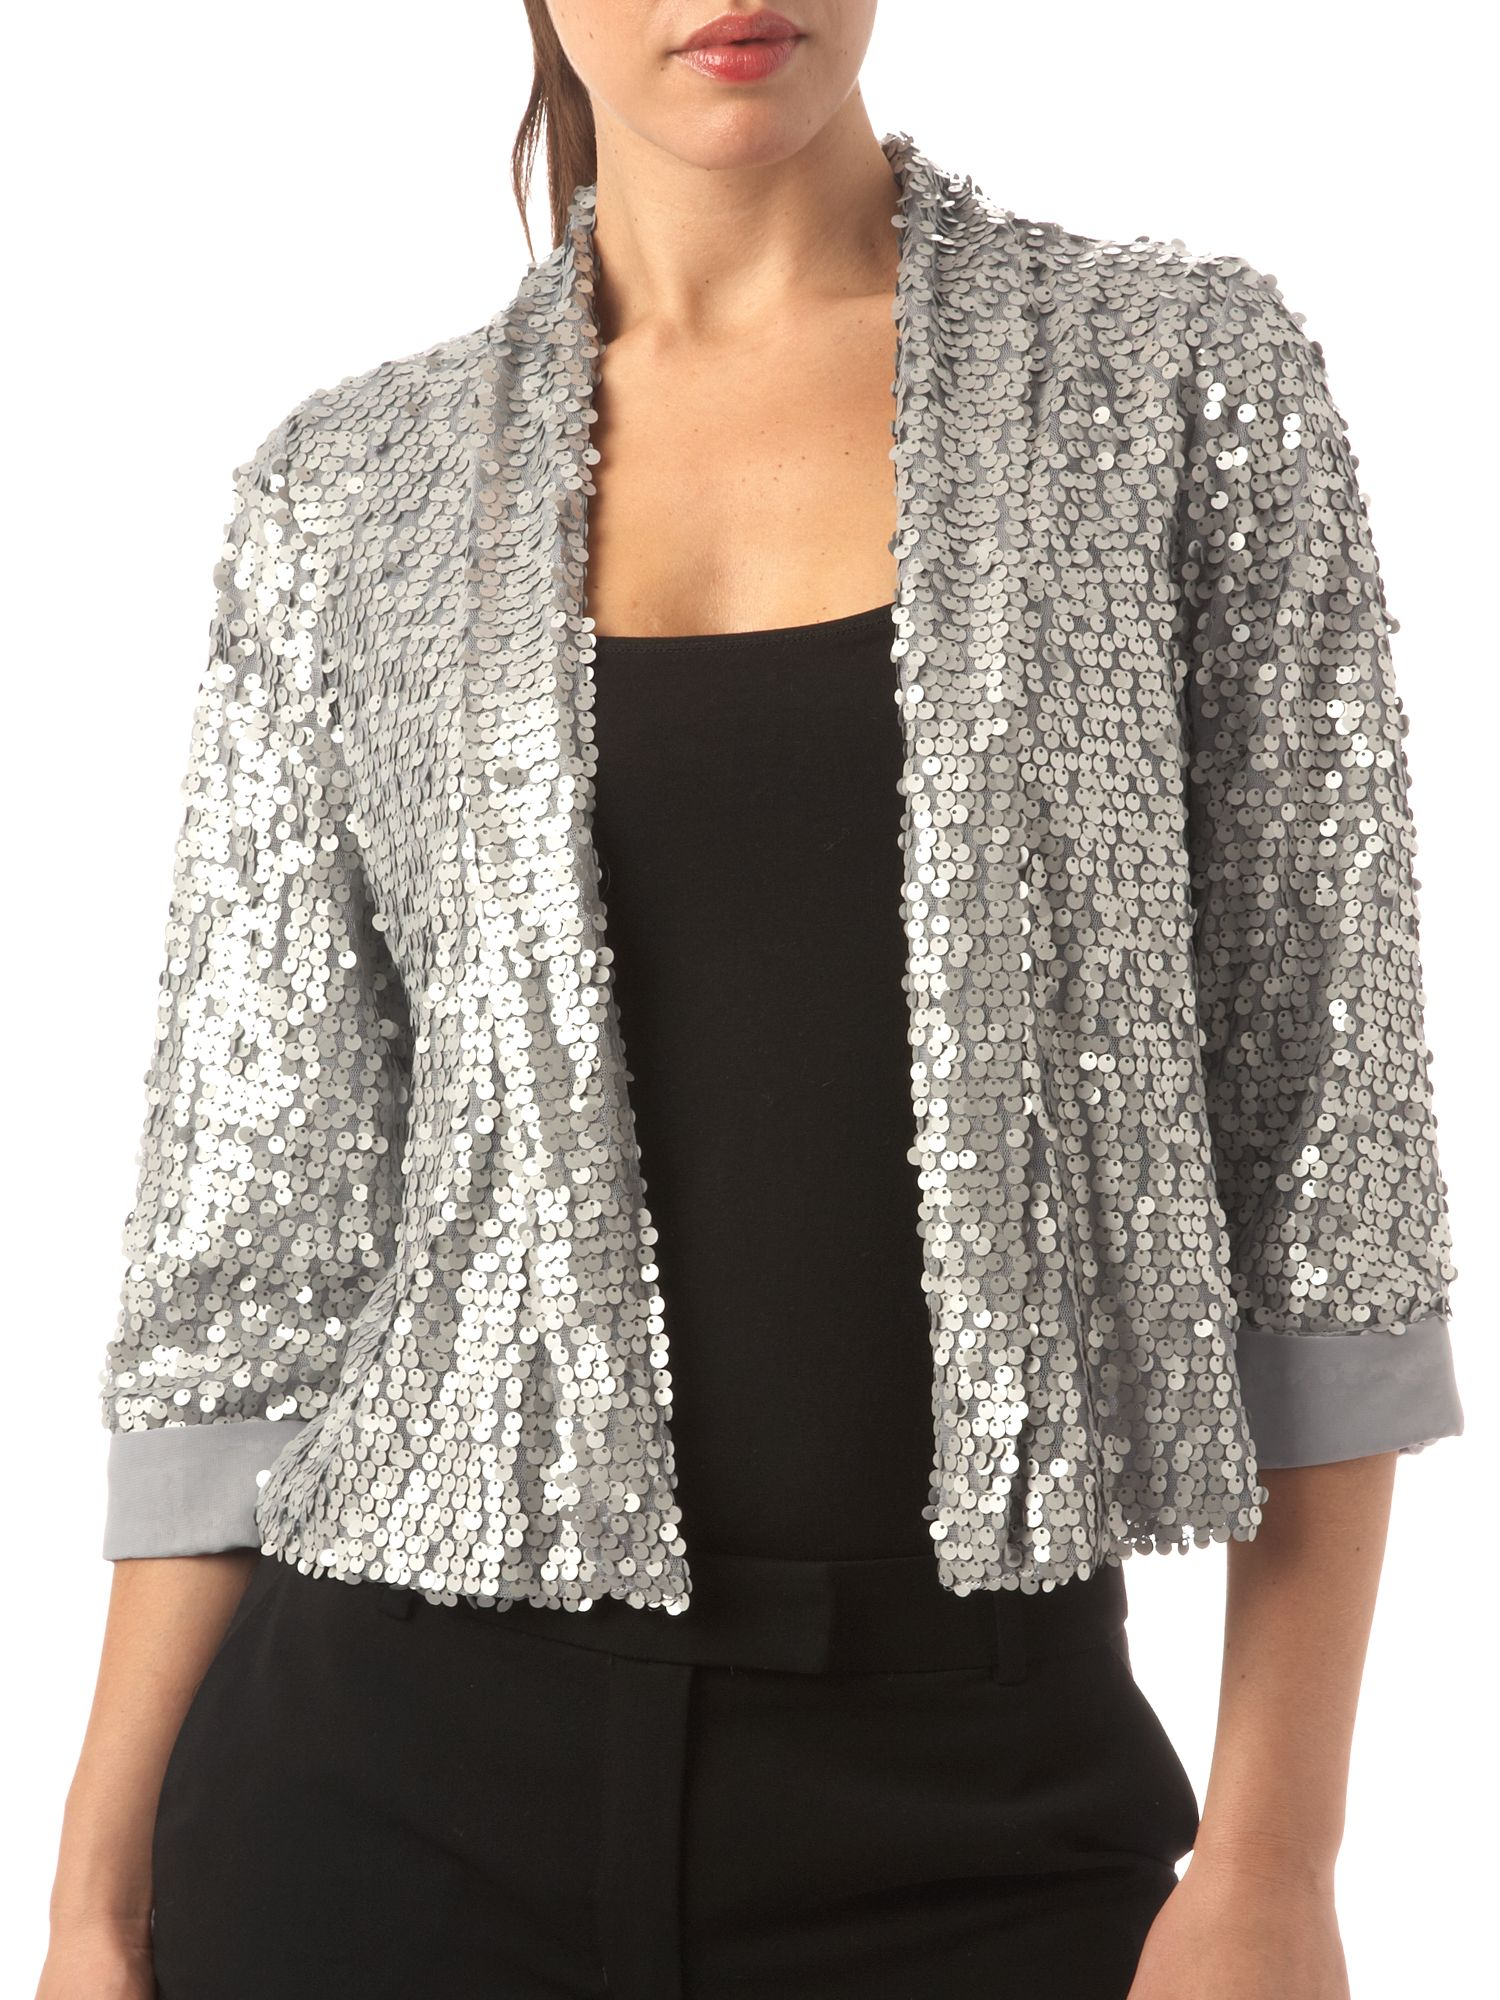 silver sequin jacket - DriverLayer Search Engine